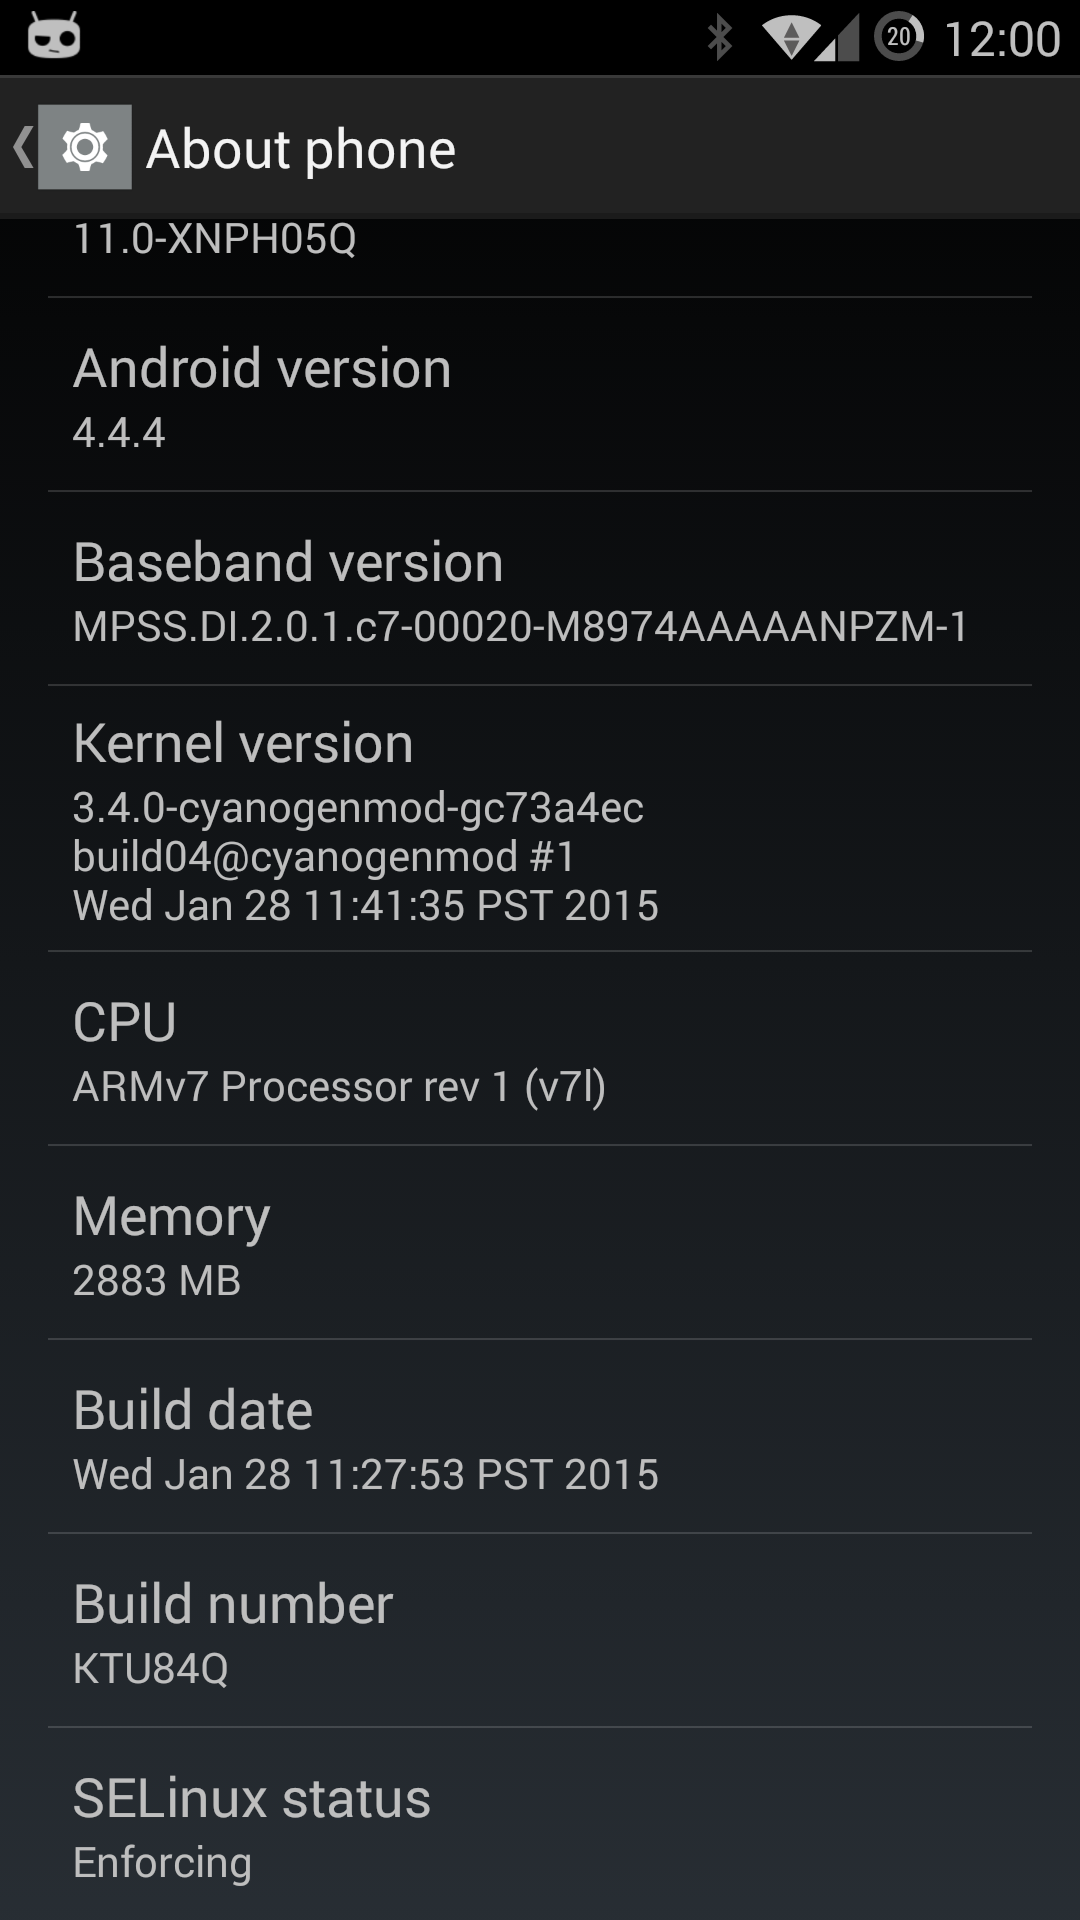 OnePlus One receives Android 4.4.4 CyanogenMod 11S build 05Q via OTA system update [Download link]